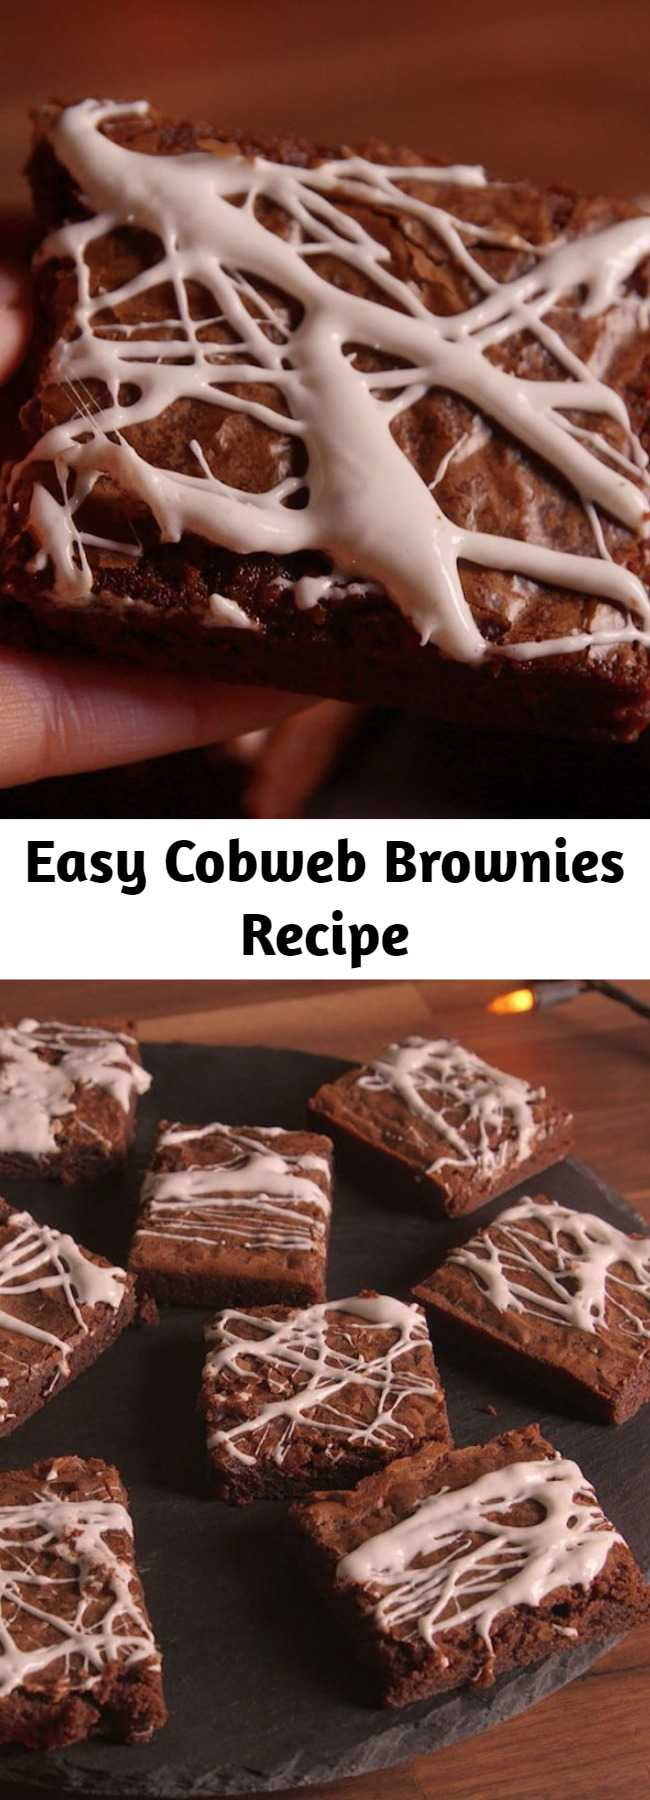 Easy Cobweb Brownies Recipe - Here's the super easy way to dress up a box of brownies.